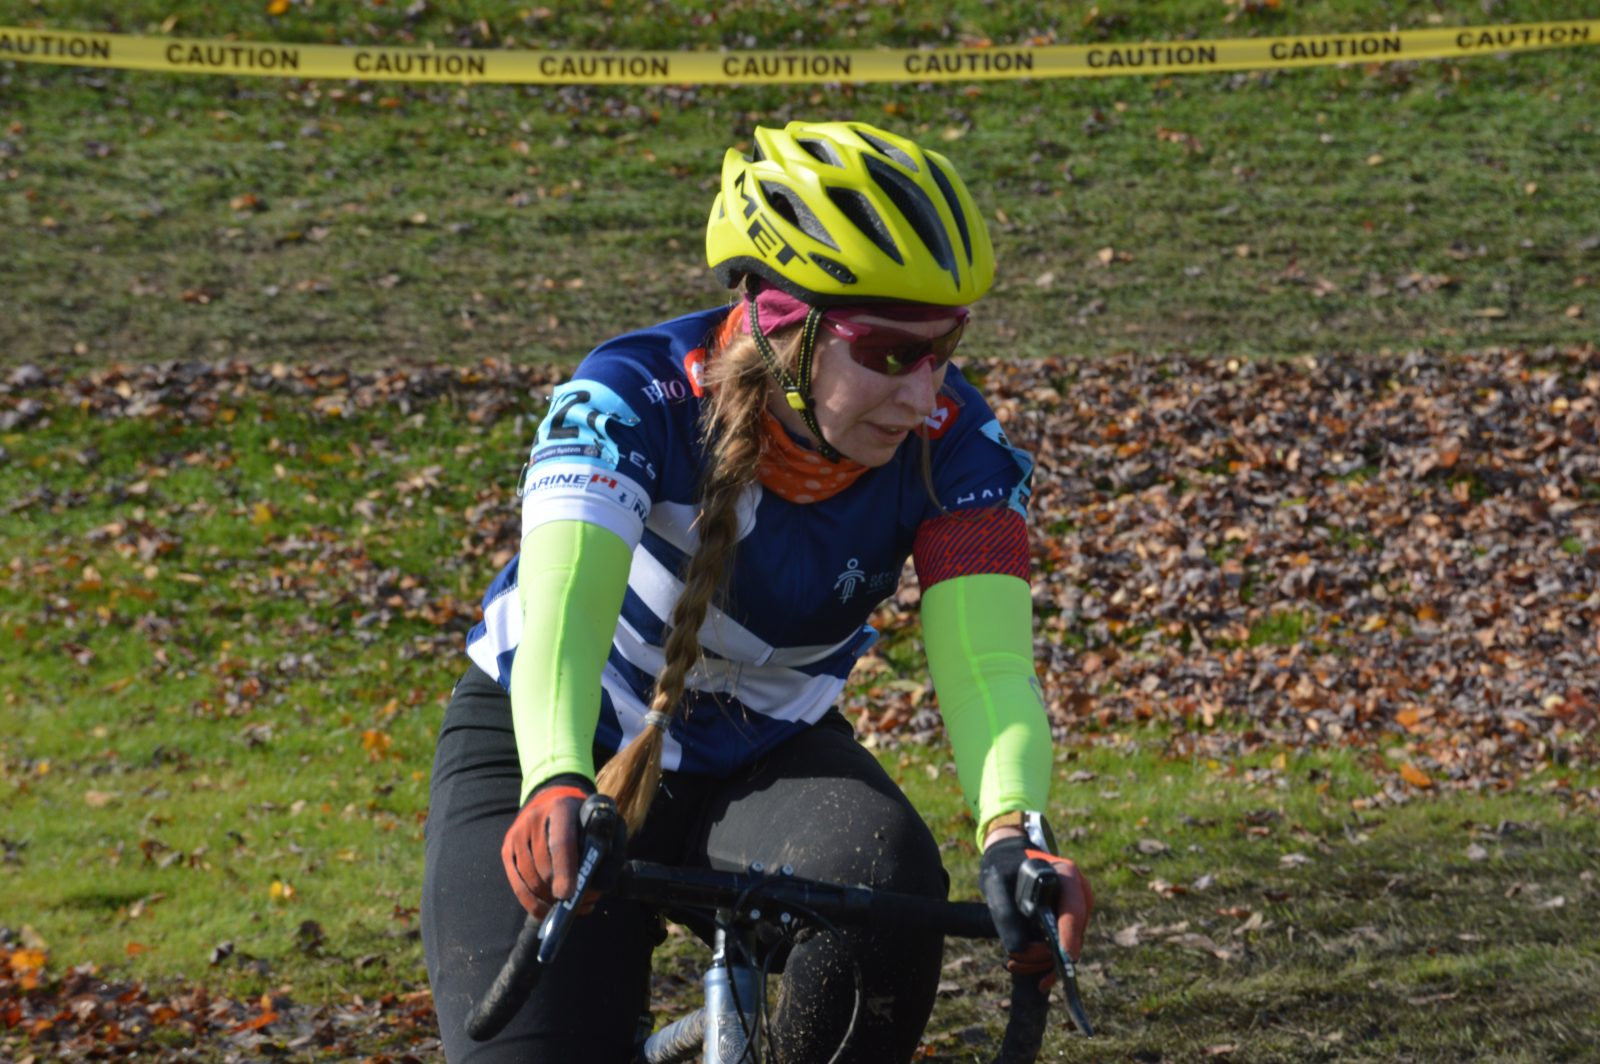 Cyclecross competitors race in Cornwall